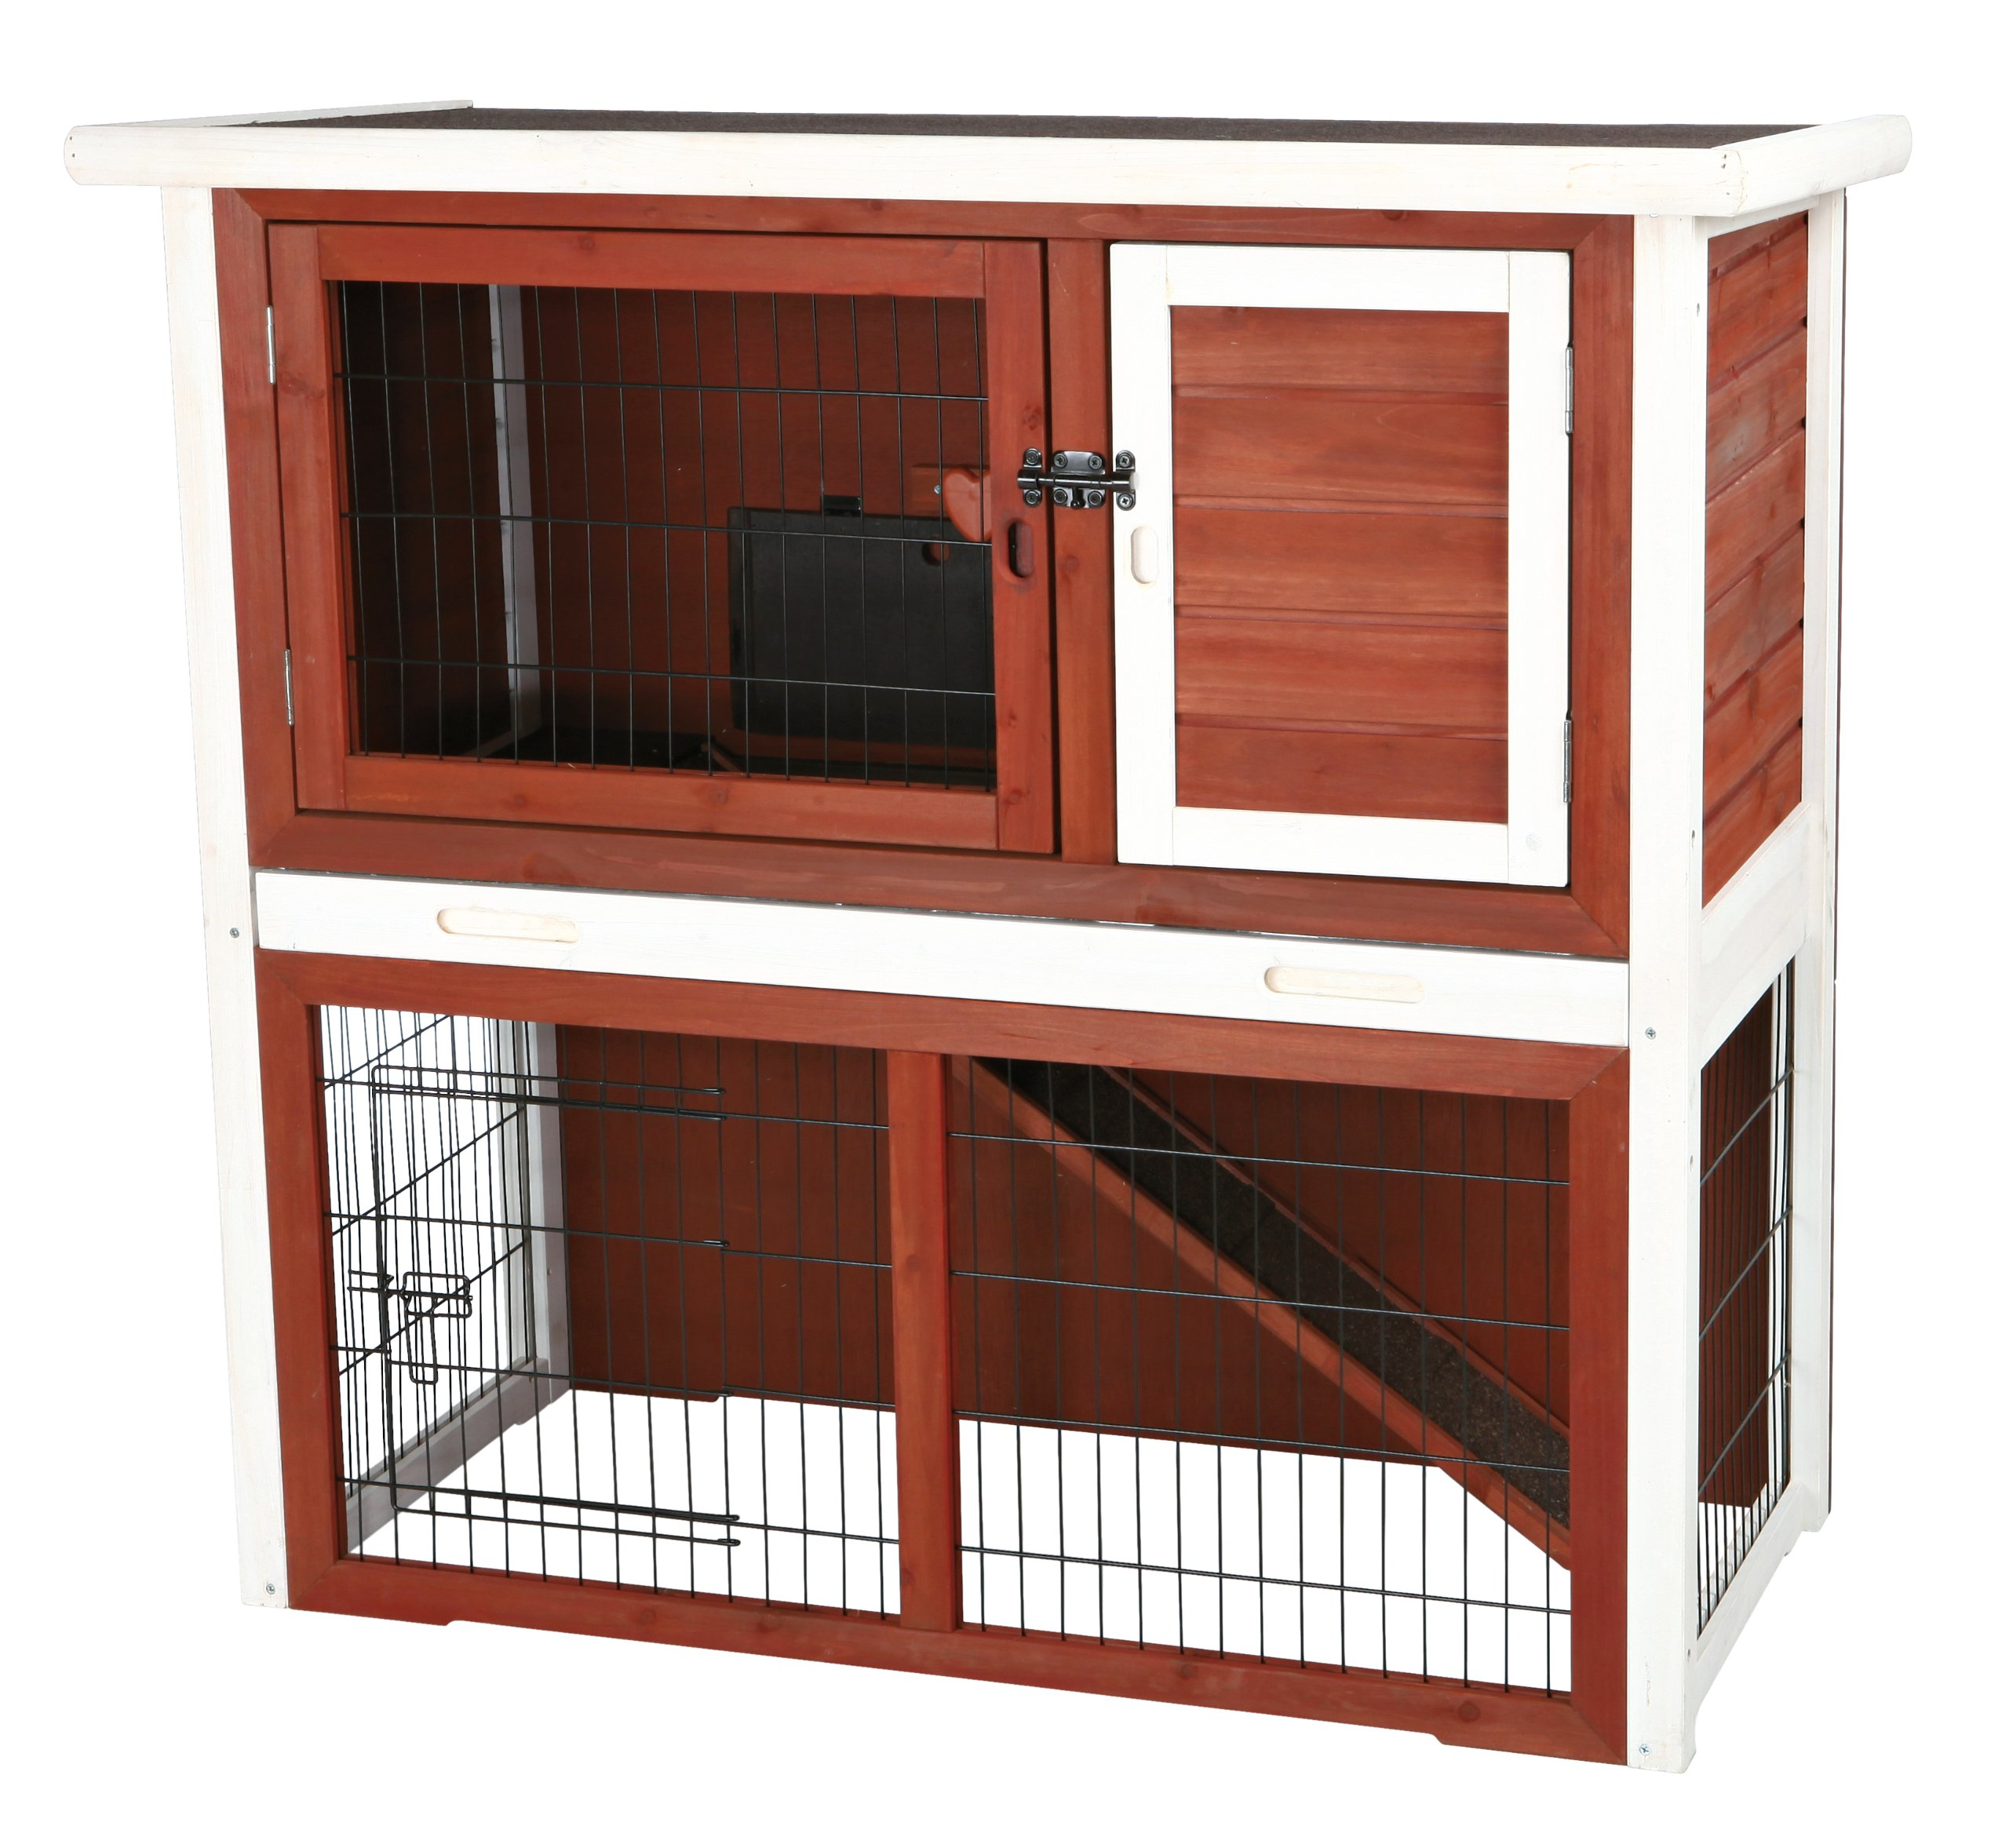 Trixie Pet Products Rabbit Hutch with Sloped Roof, Medium, Brown/White by Trixie